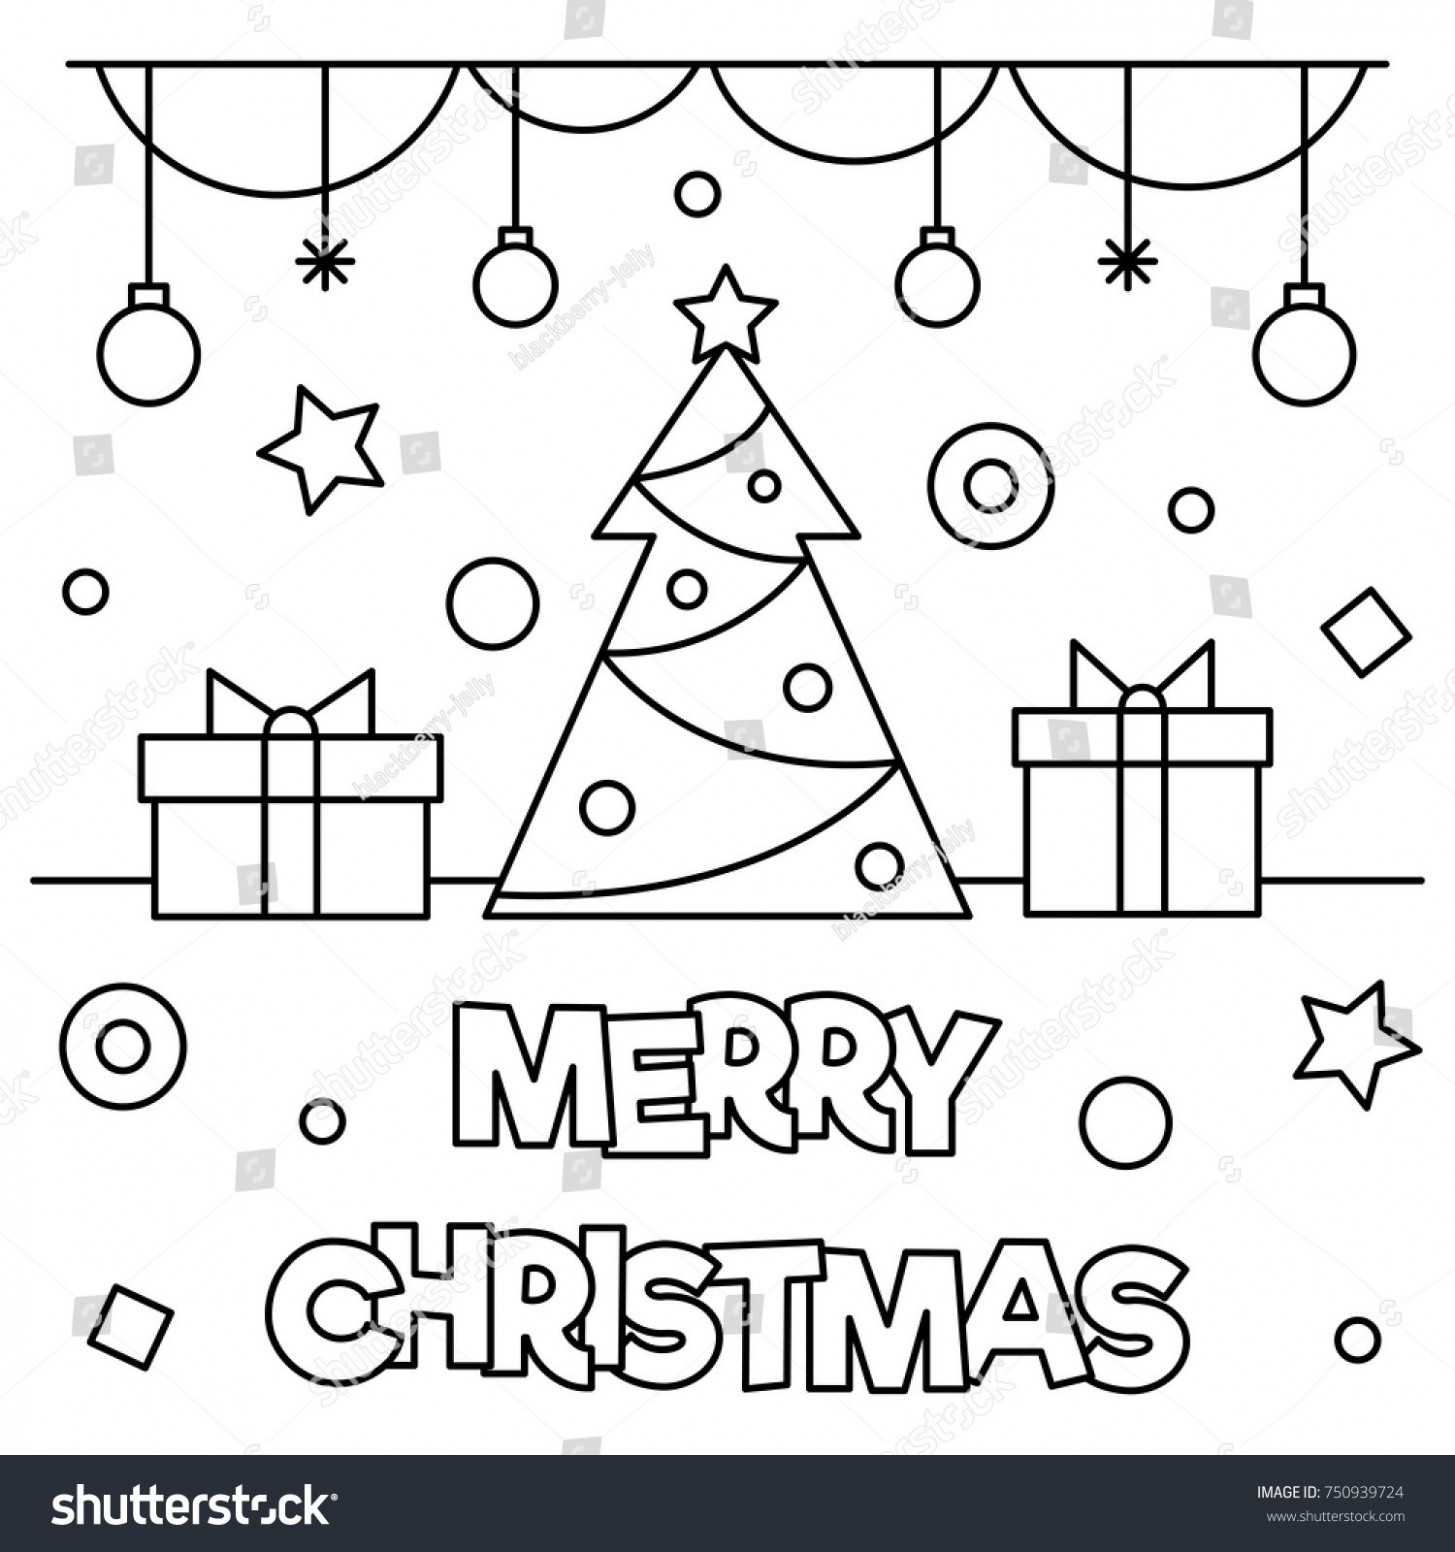 Merry Christmas Coloring Pages Fresh Merry Christmas Santa Coloring ..